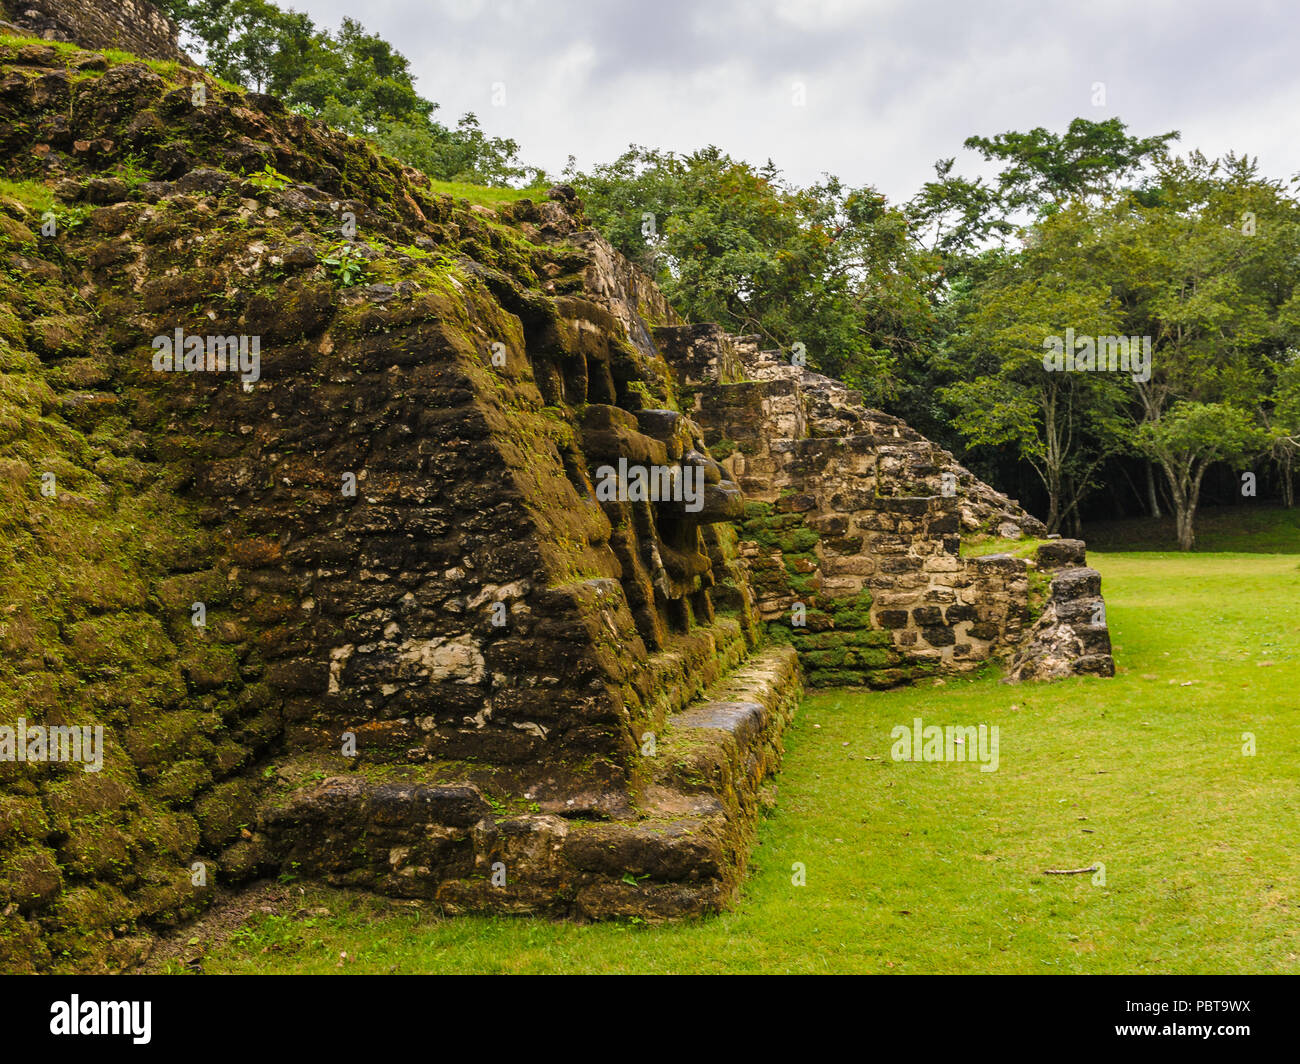 Rests of the Maya civilization in Belize - Stock Image